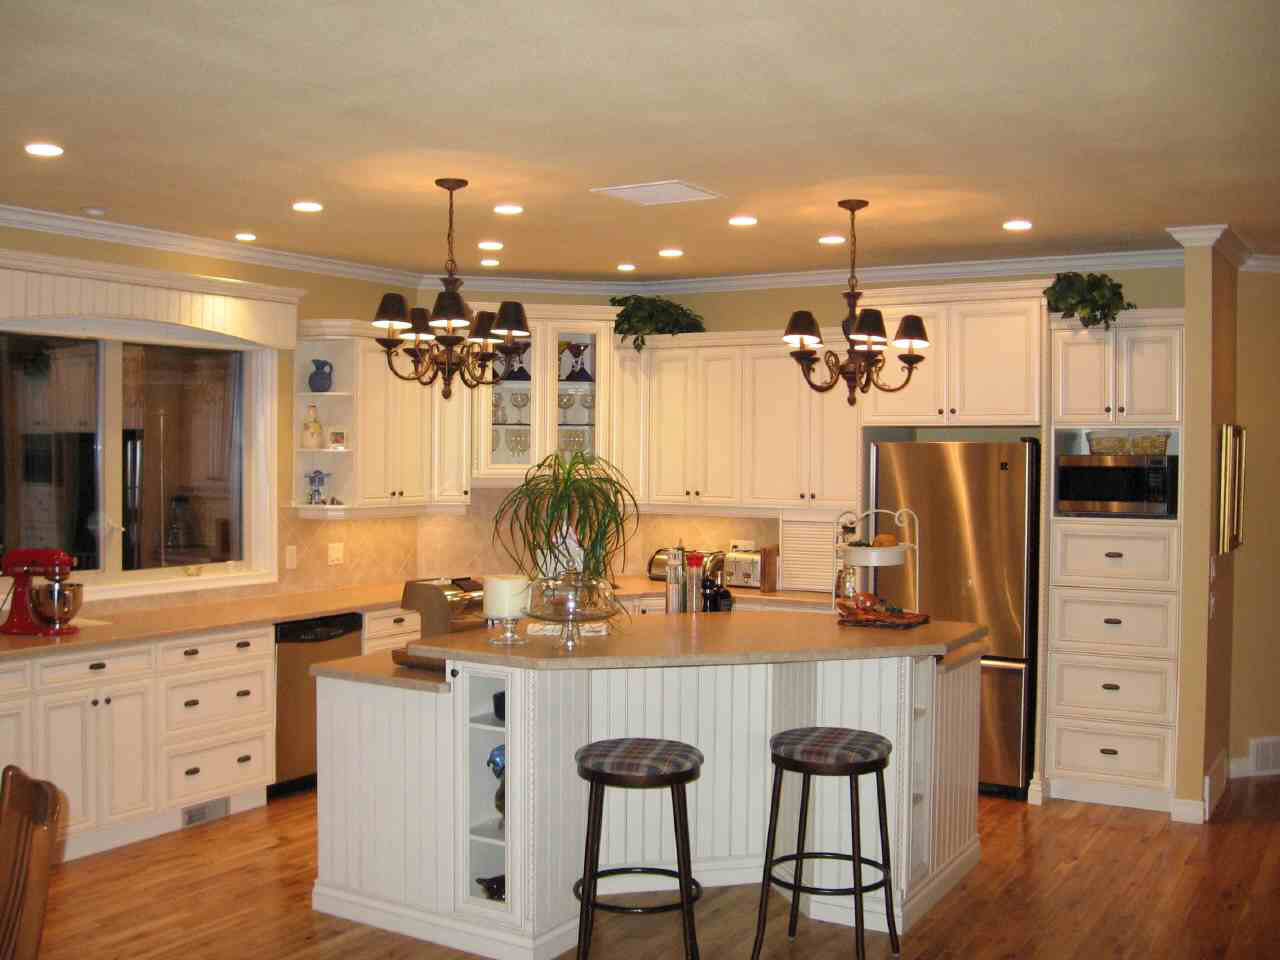 Kitchen Decoration Ideas Where Can I Buy An Island For My Peartreedesigns Beautiful Modern Interiors